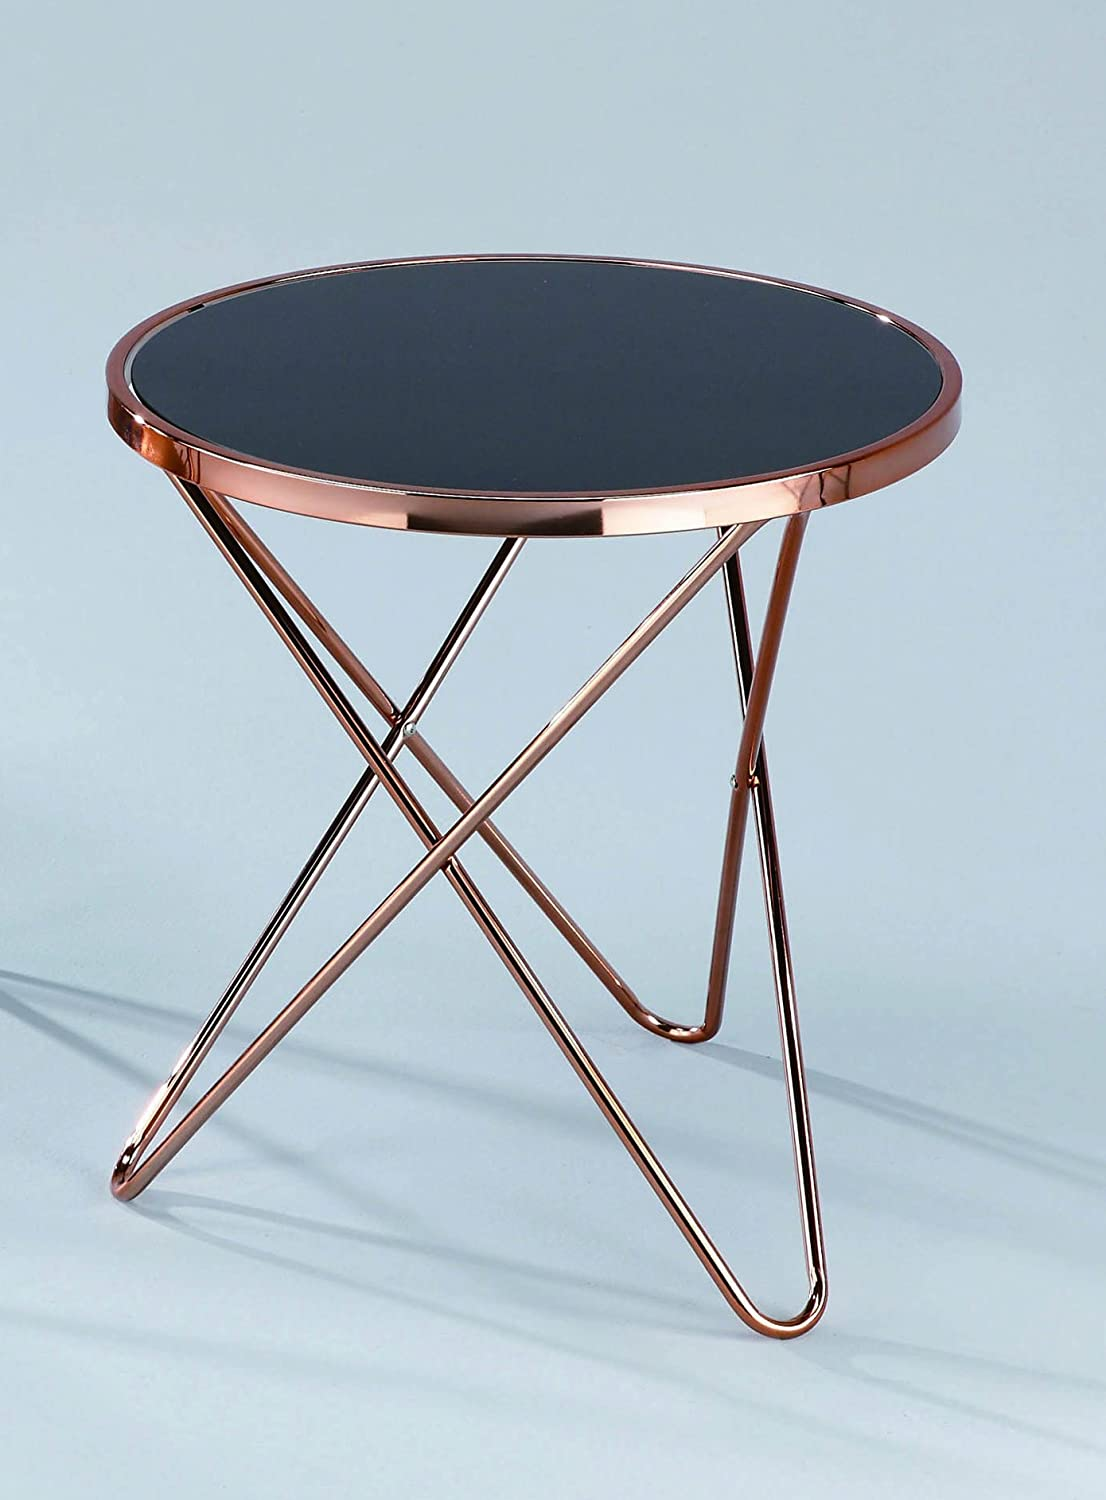 ASPECT Porto Round Side Coffee End Lamp Table Metal Copper Black